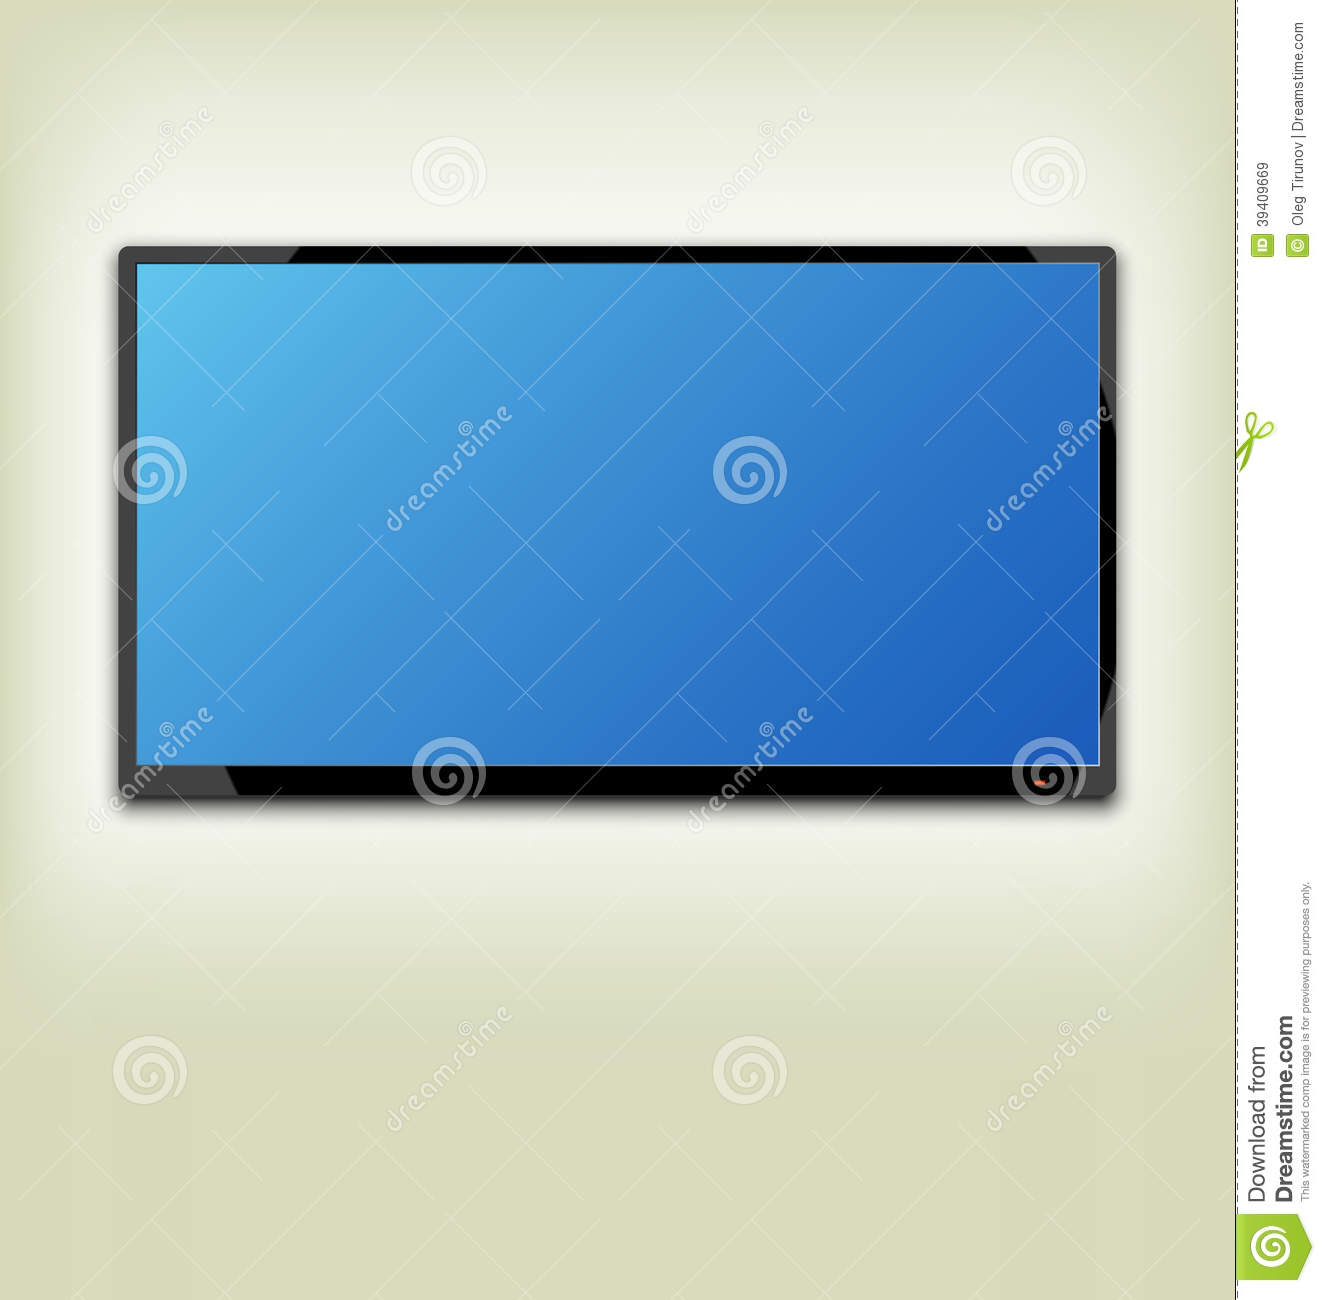 Lcd tv on a wall royalty free stock images   image: 6535369